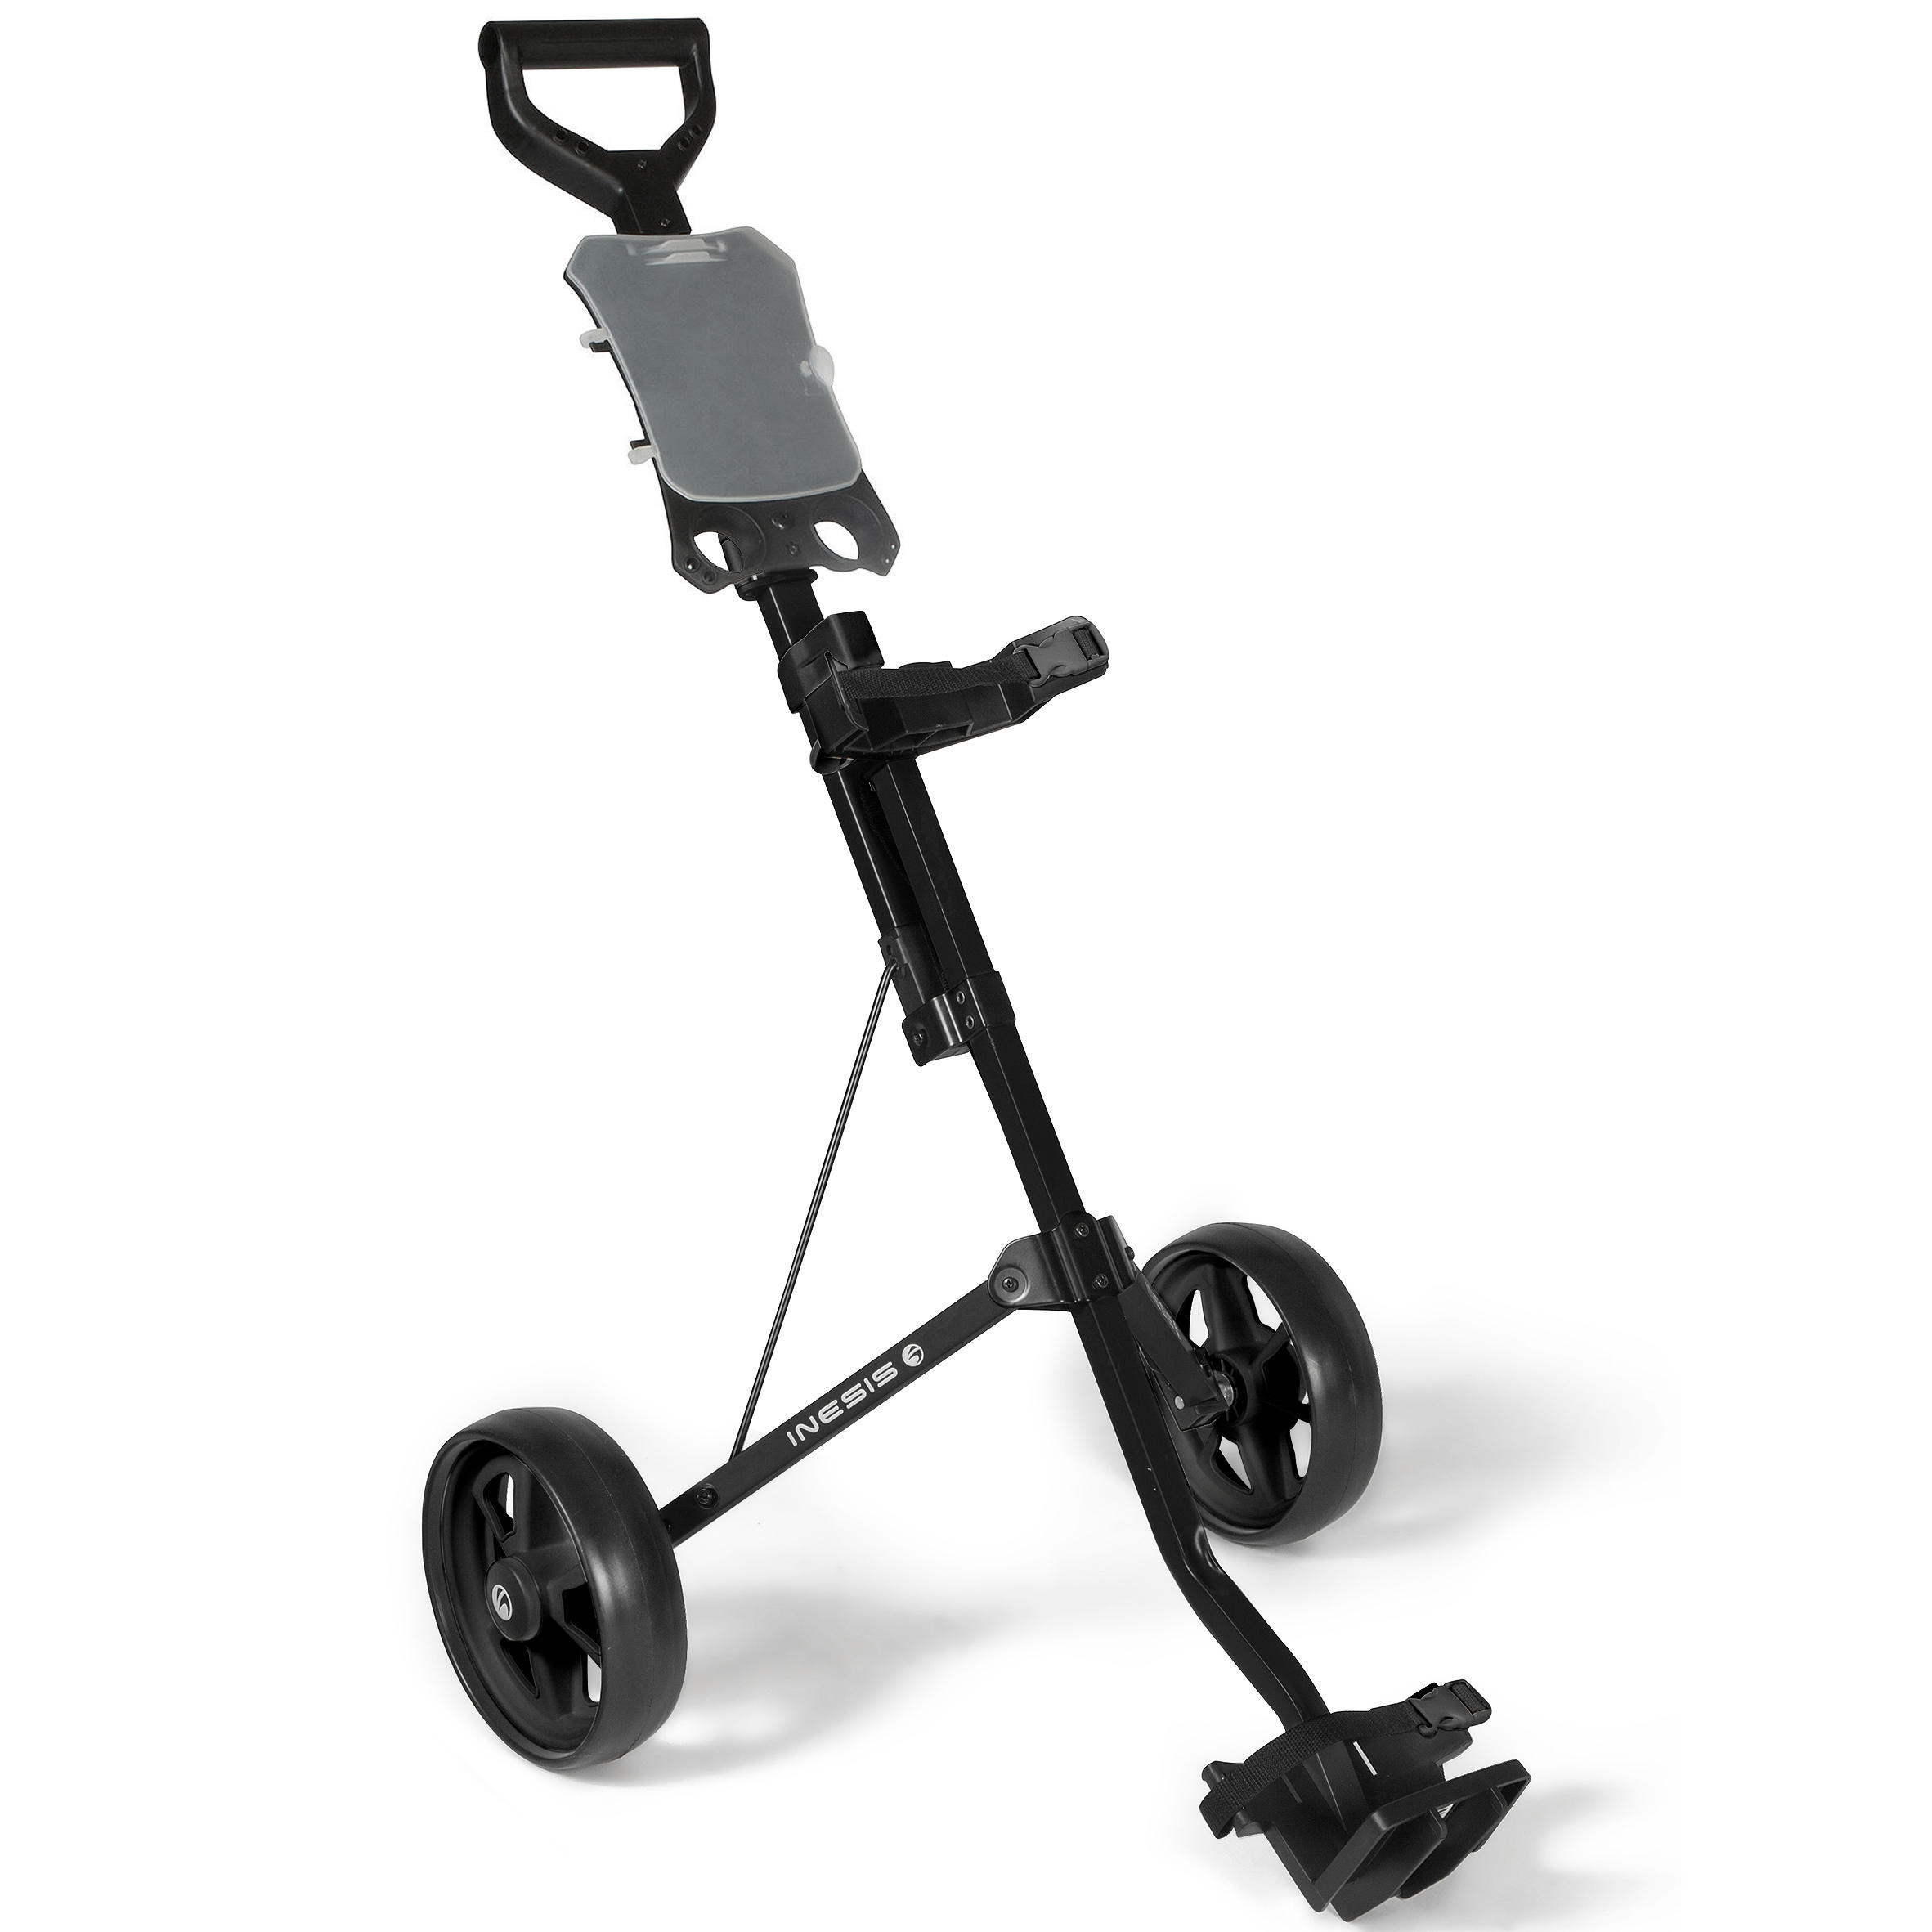 2-WHEEL GOLF TROLLEY